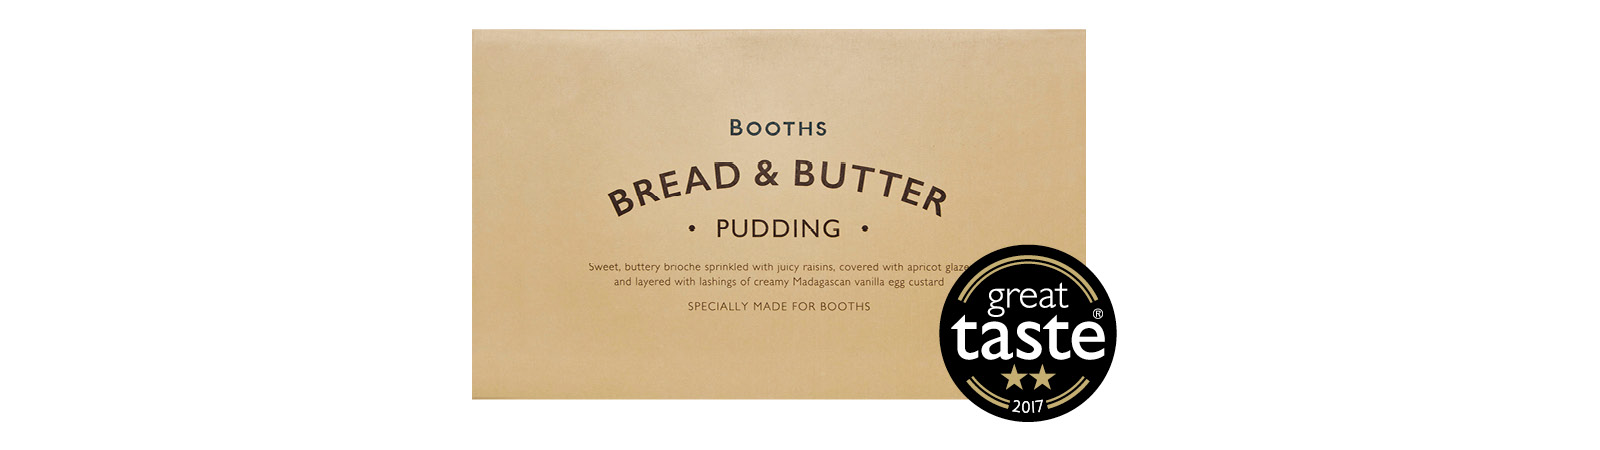 Booths Bread & Butter Pudding